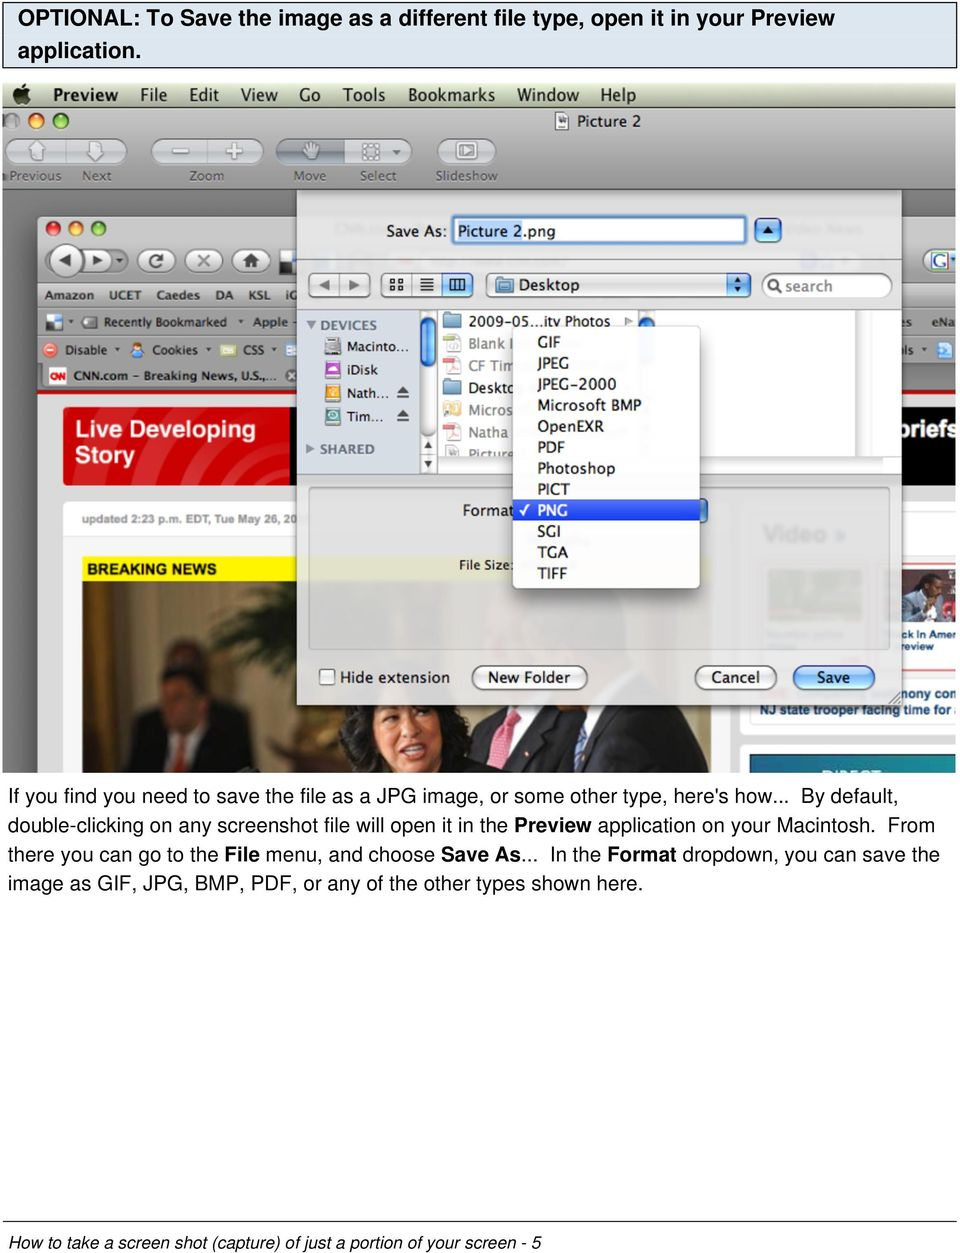 .. By default, double-clicking on any screenshot file will open it in the Preview application on your Macintosh.